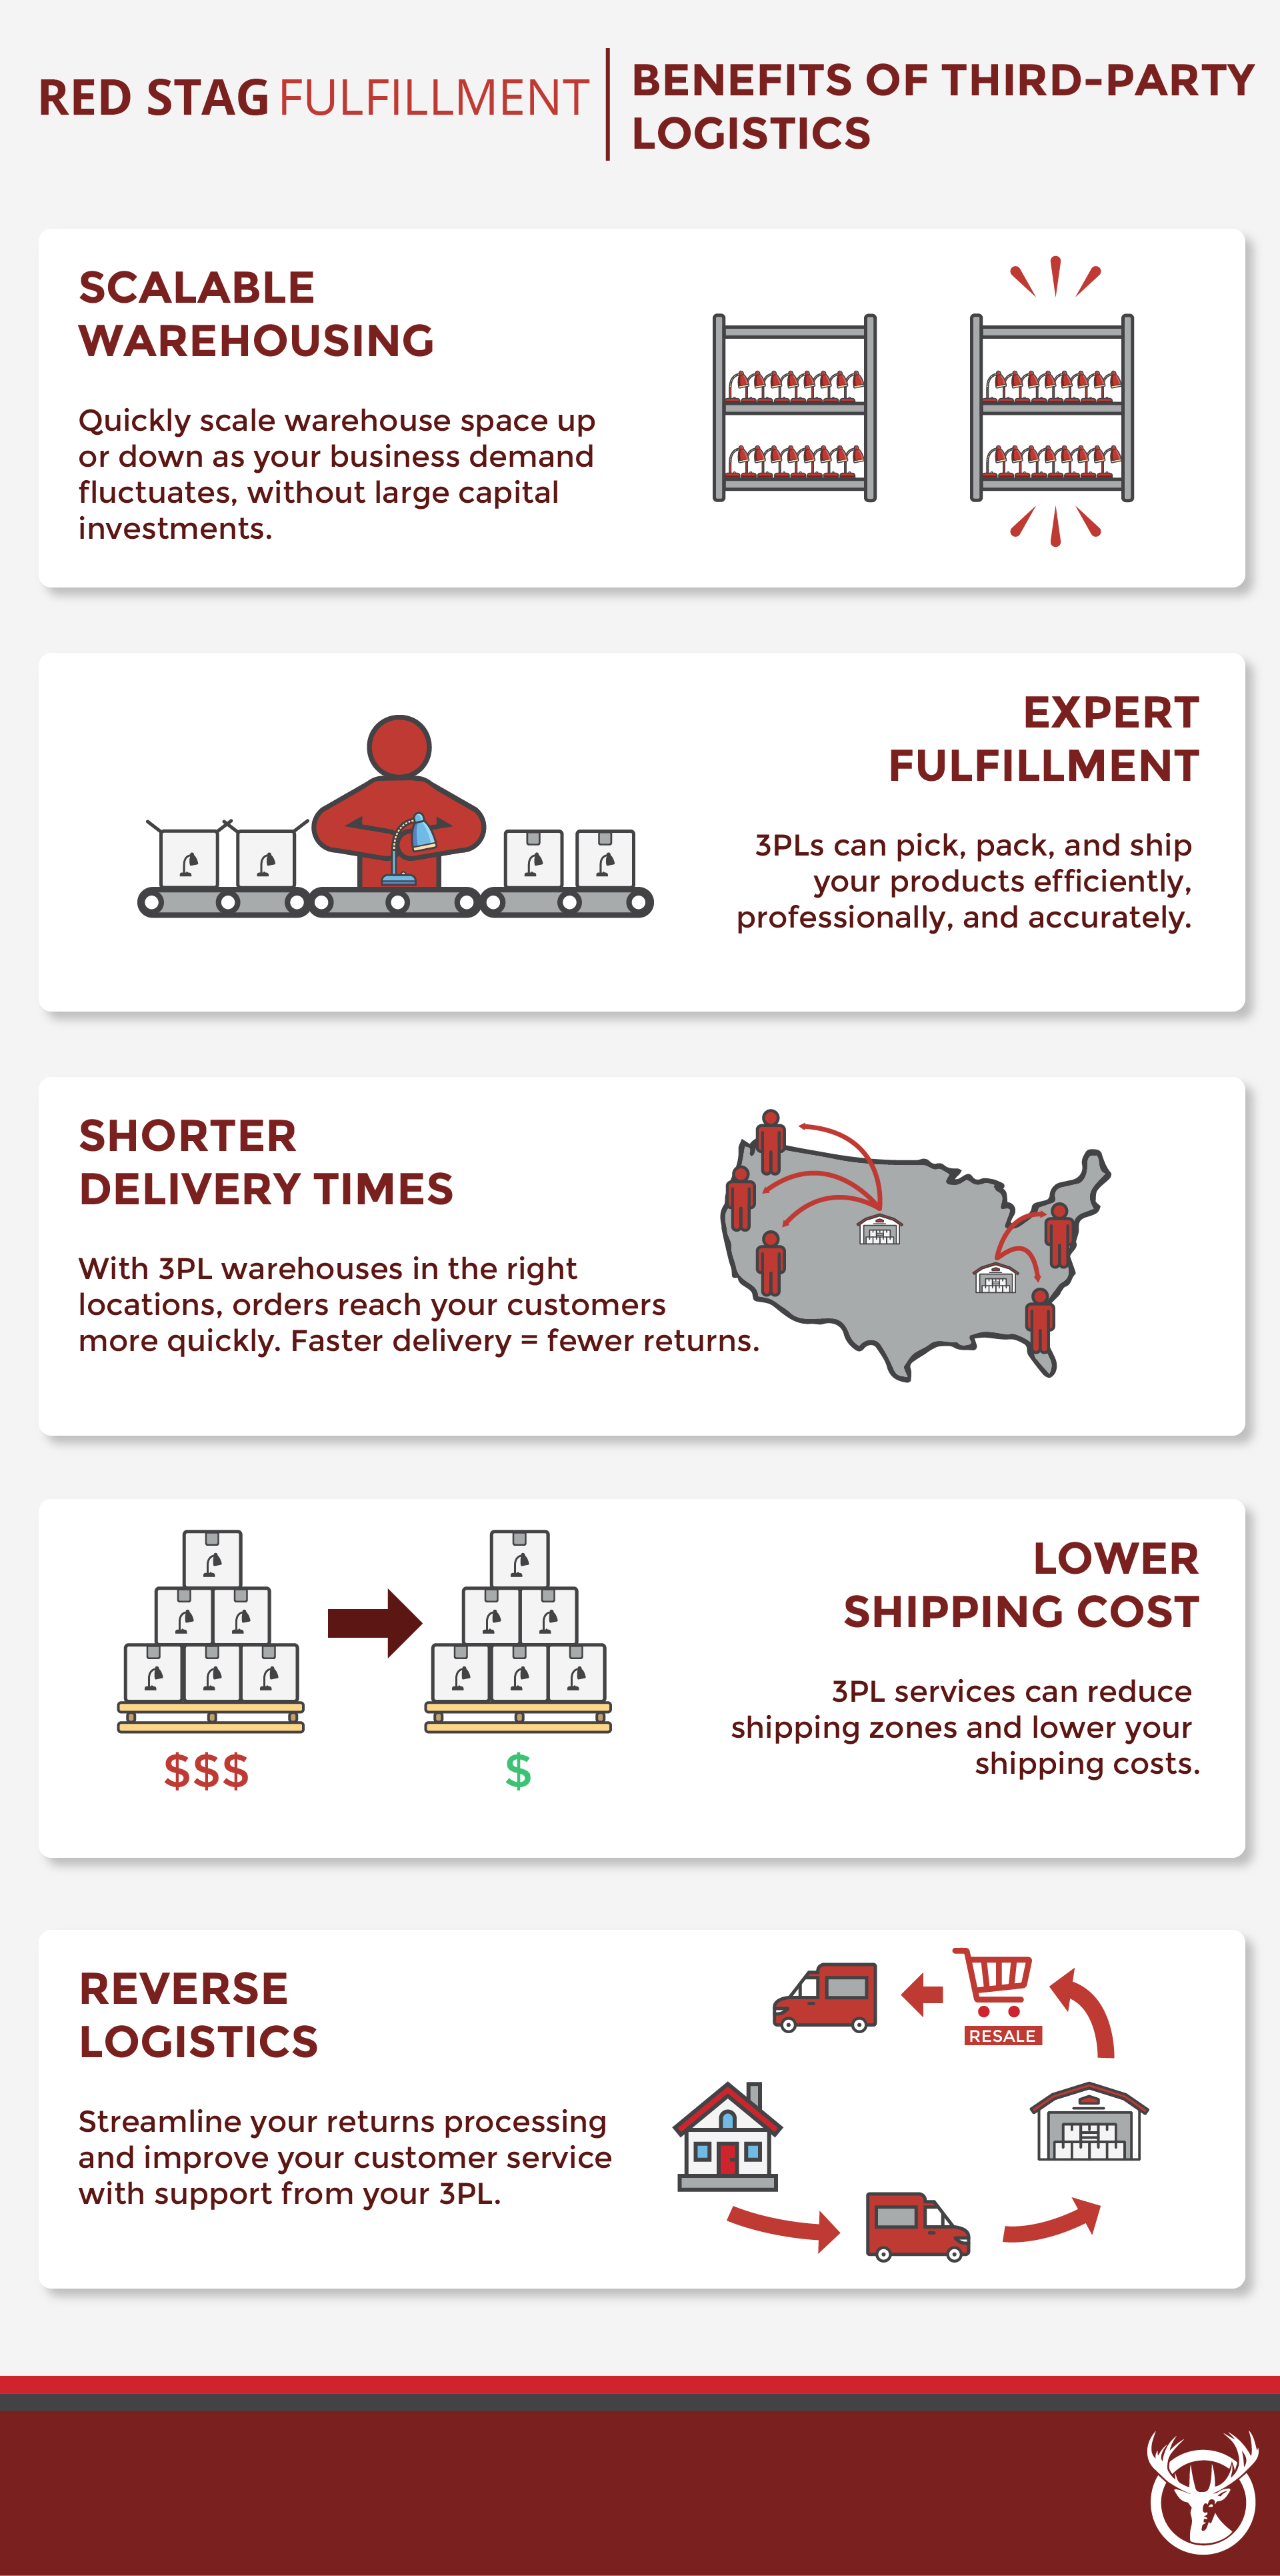 Benefits of 3rd-party logistics